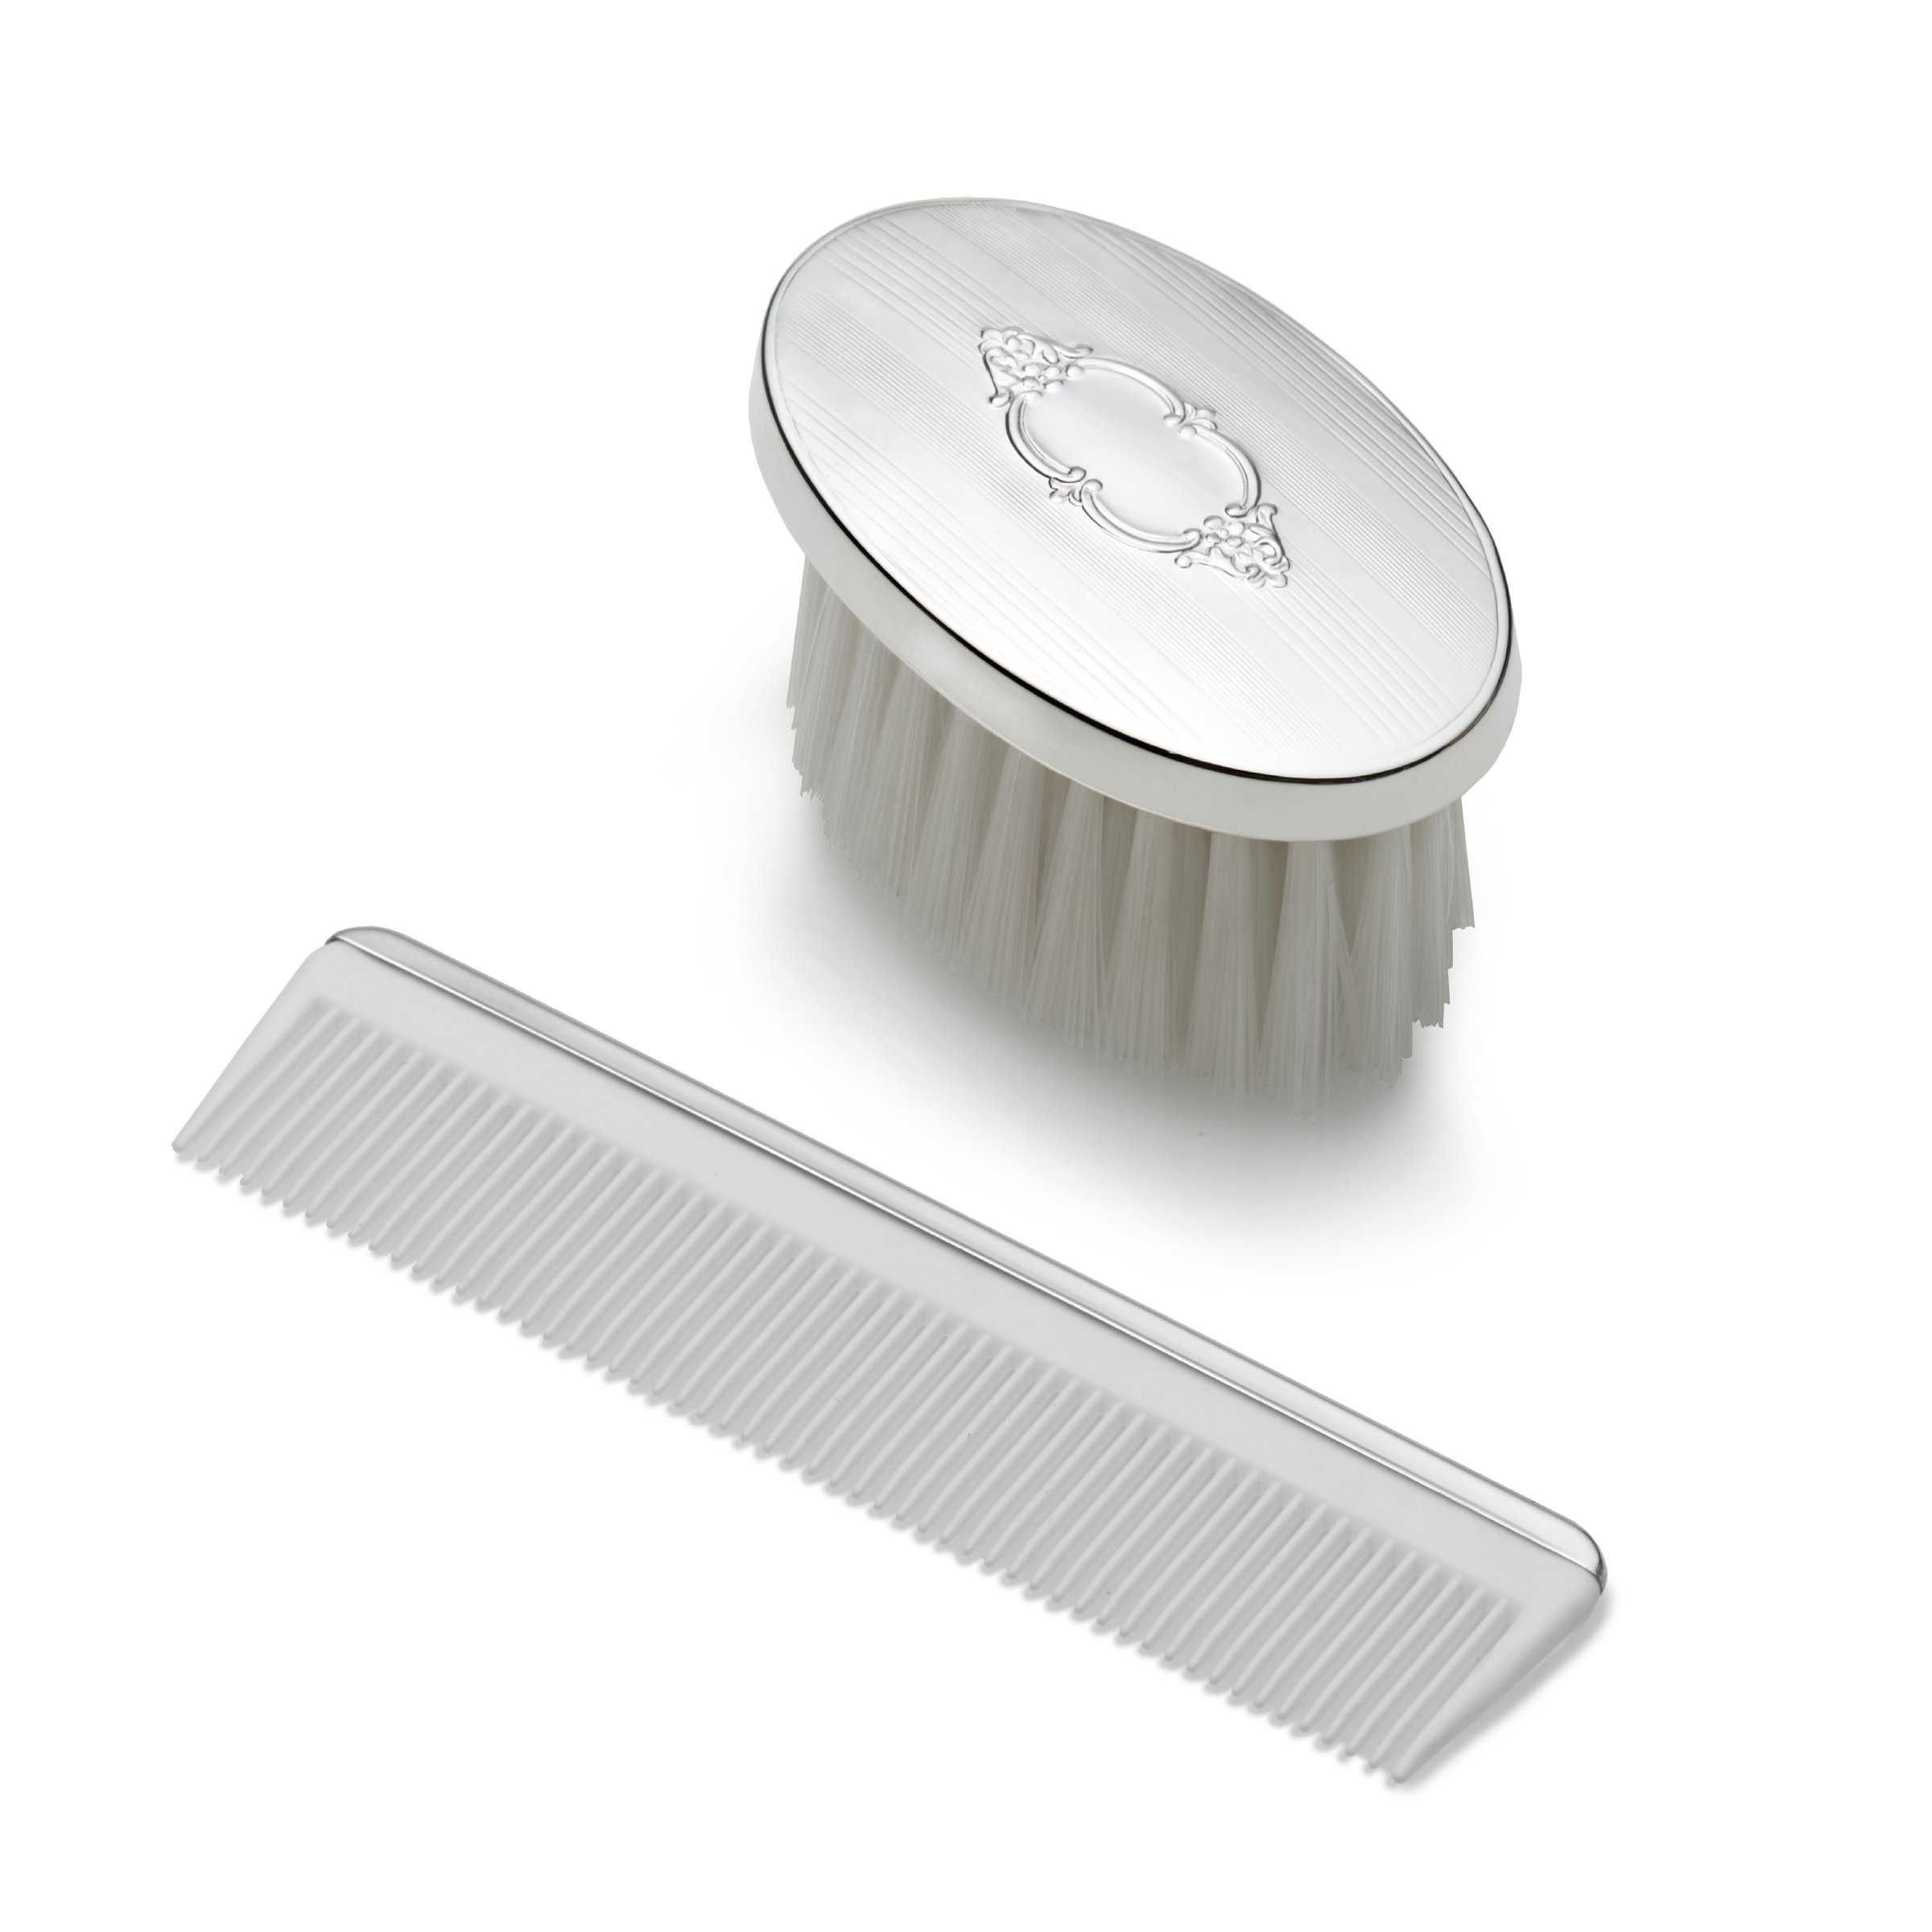 EMPIRE Boys Shield Design Oval Sterling Brush by EMPIRE